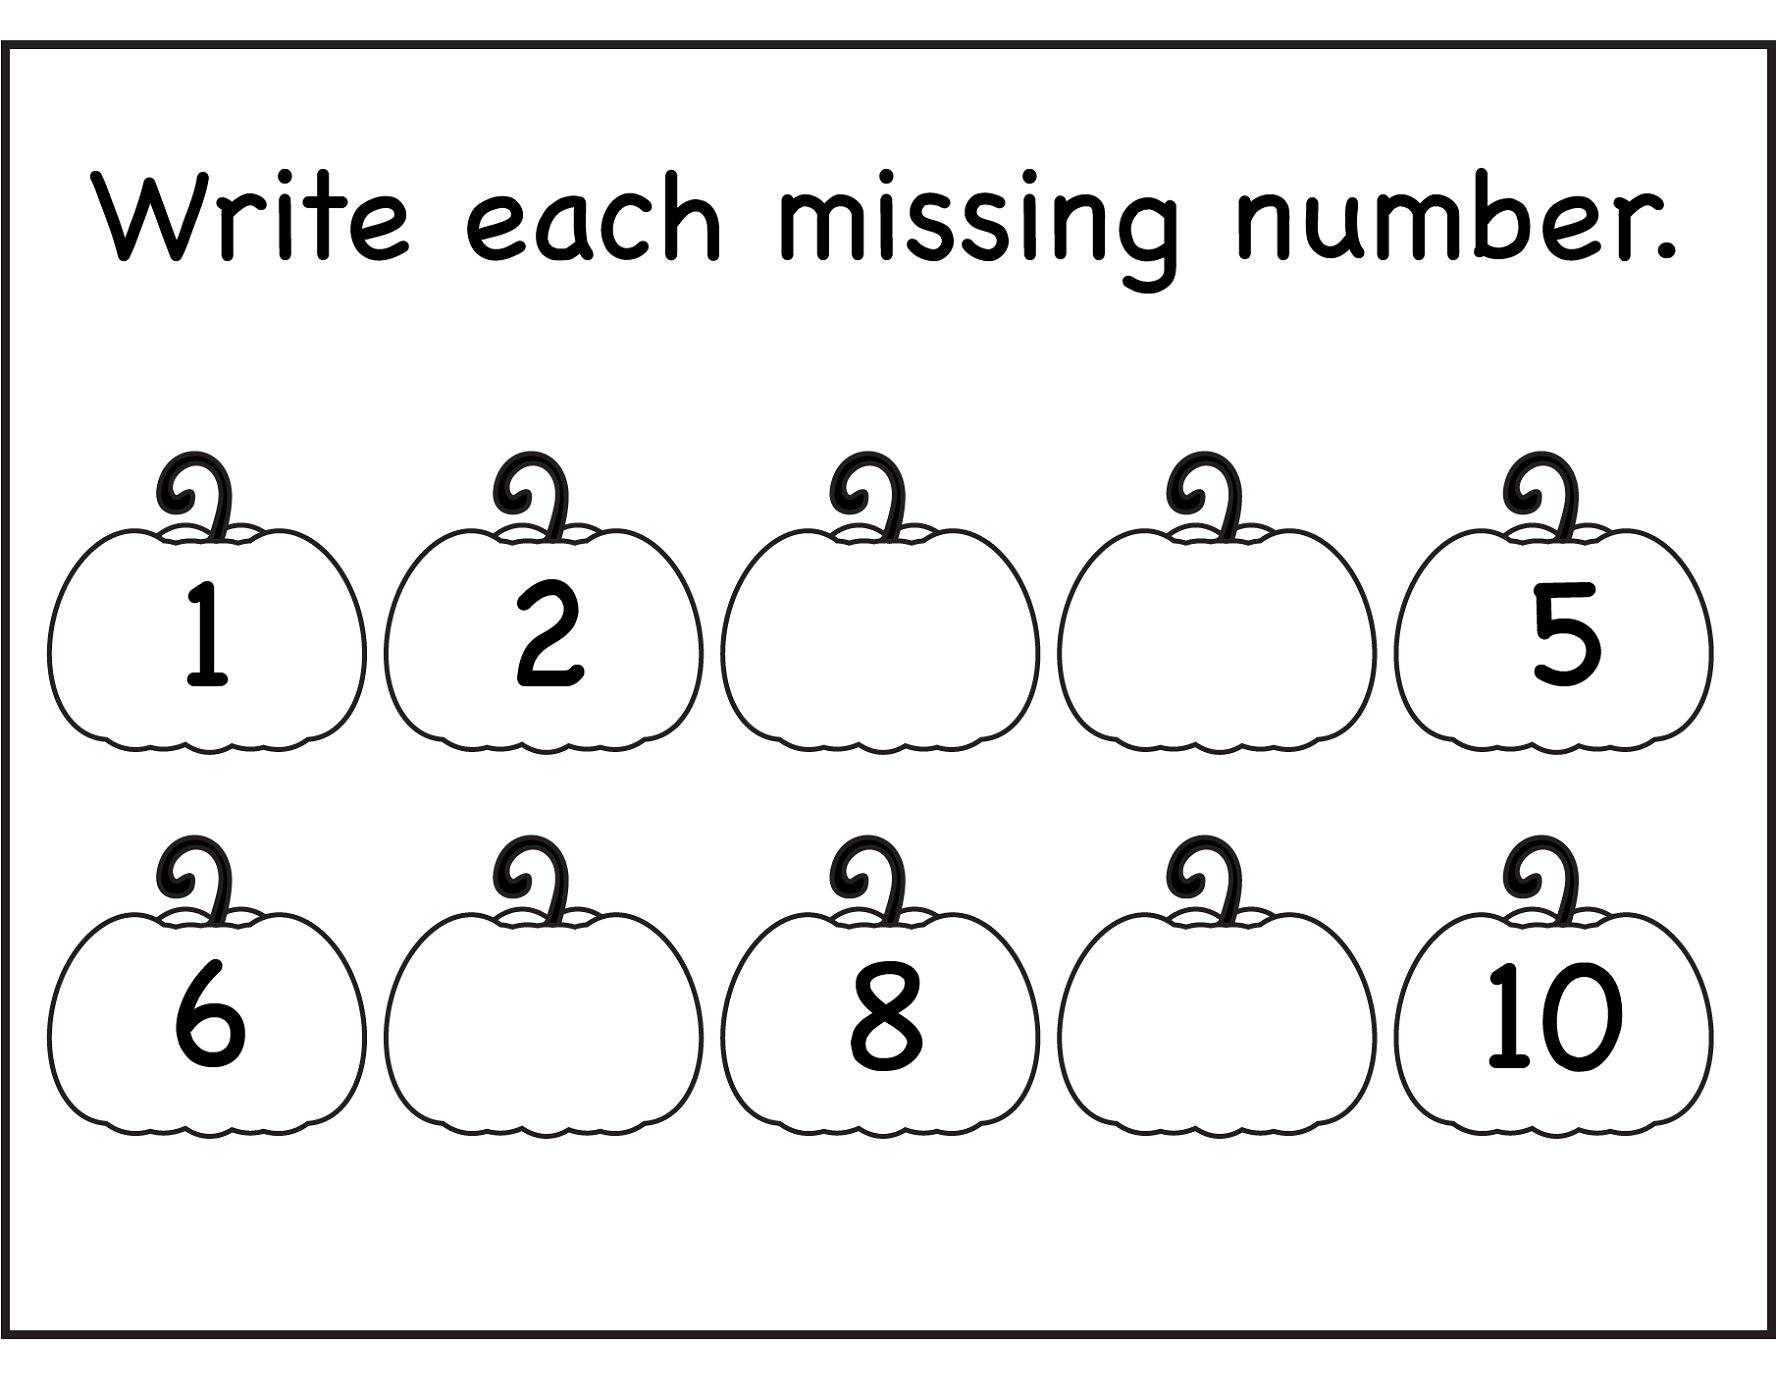 Worksheets For Kindergarten Numbers 1 10 Deployday – Number Worksheets for Kindergarten